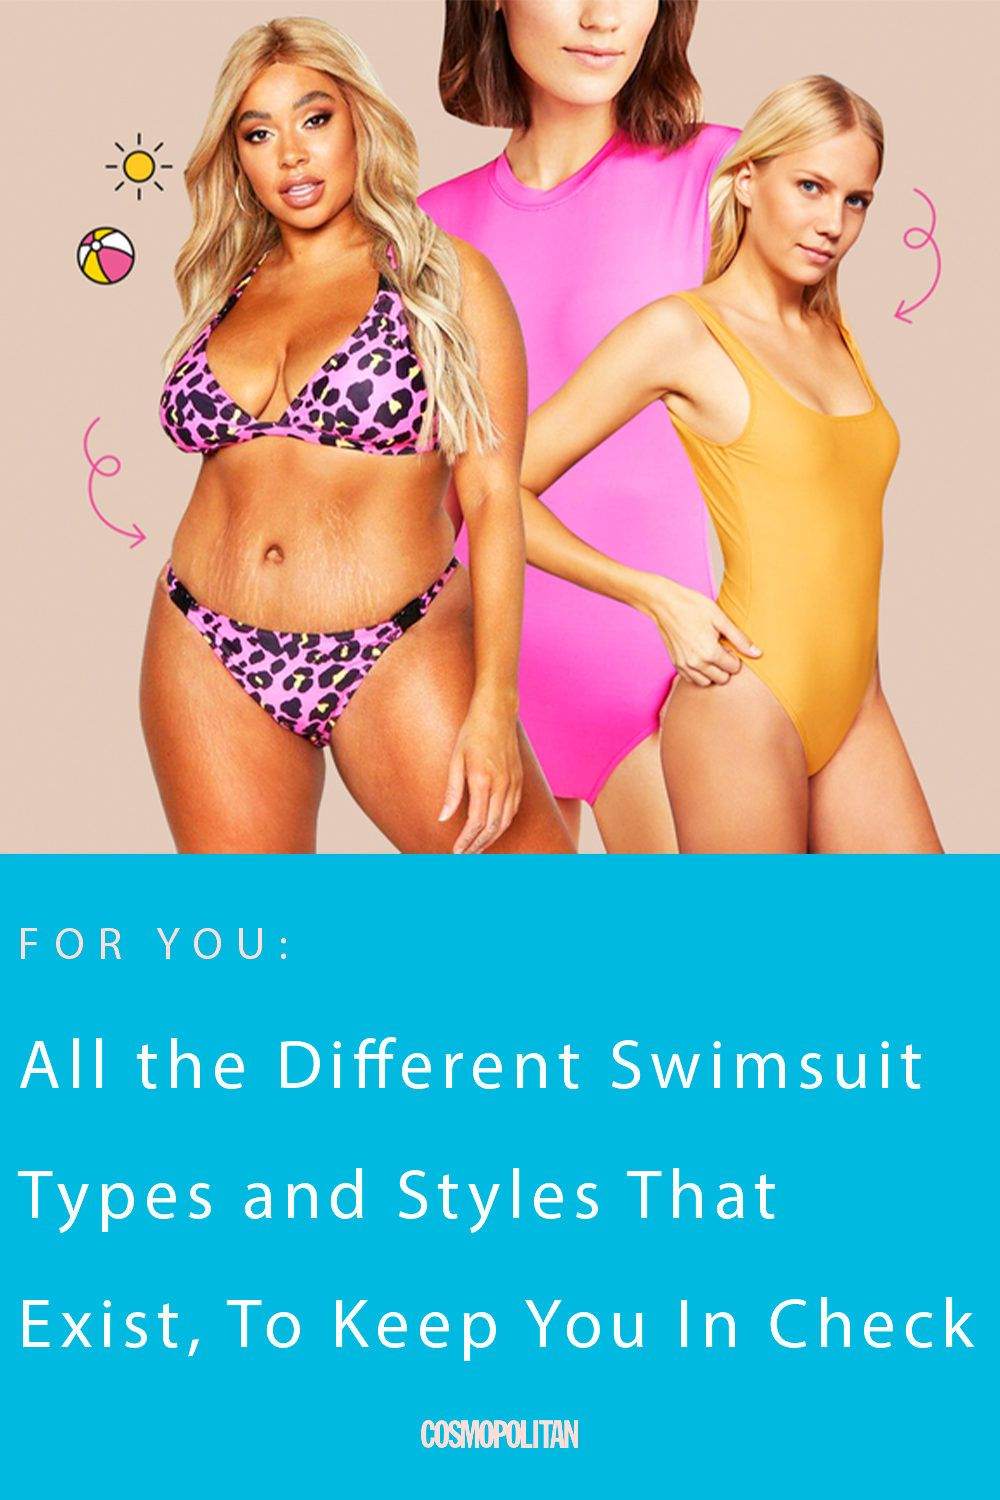 All the Different Swimsuit Types and Styles That Exist, In Case Ya Didn't Know